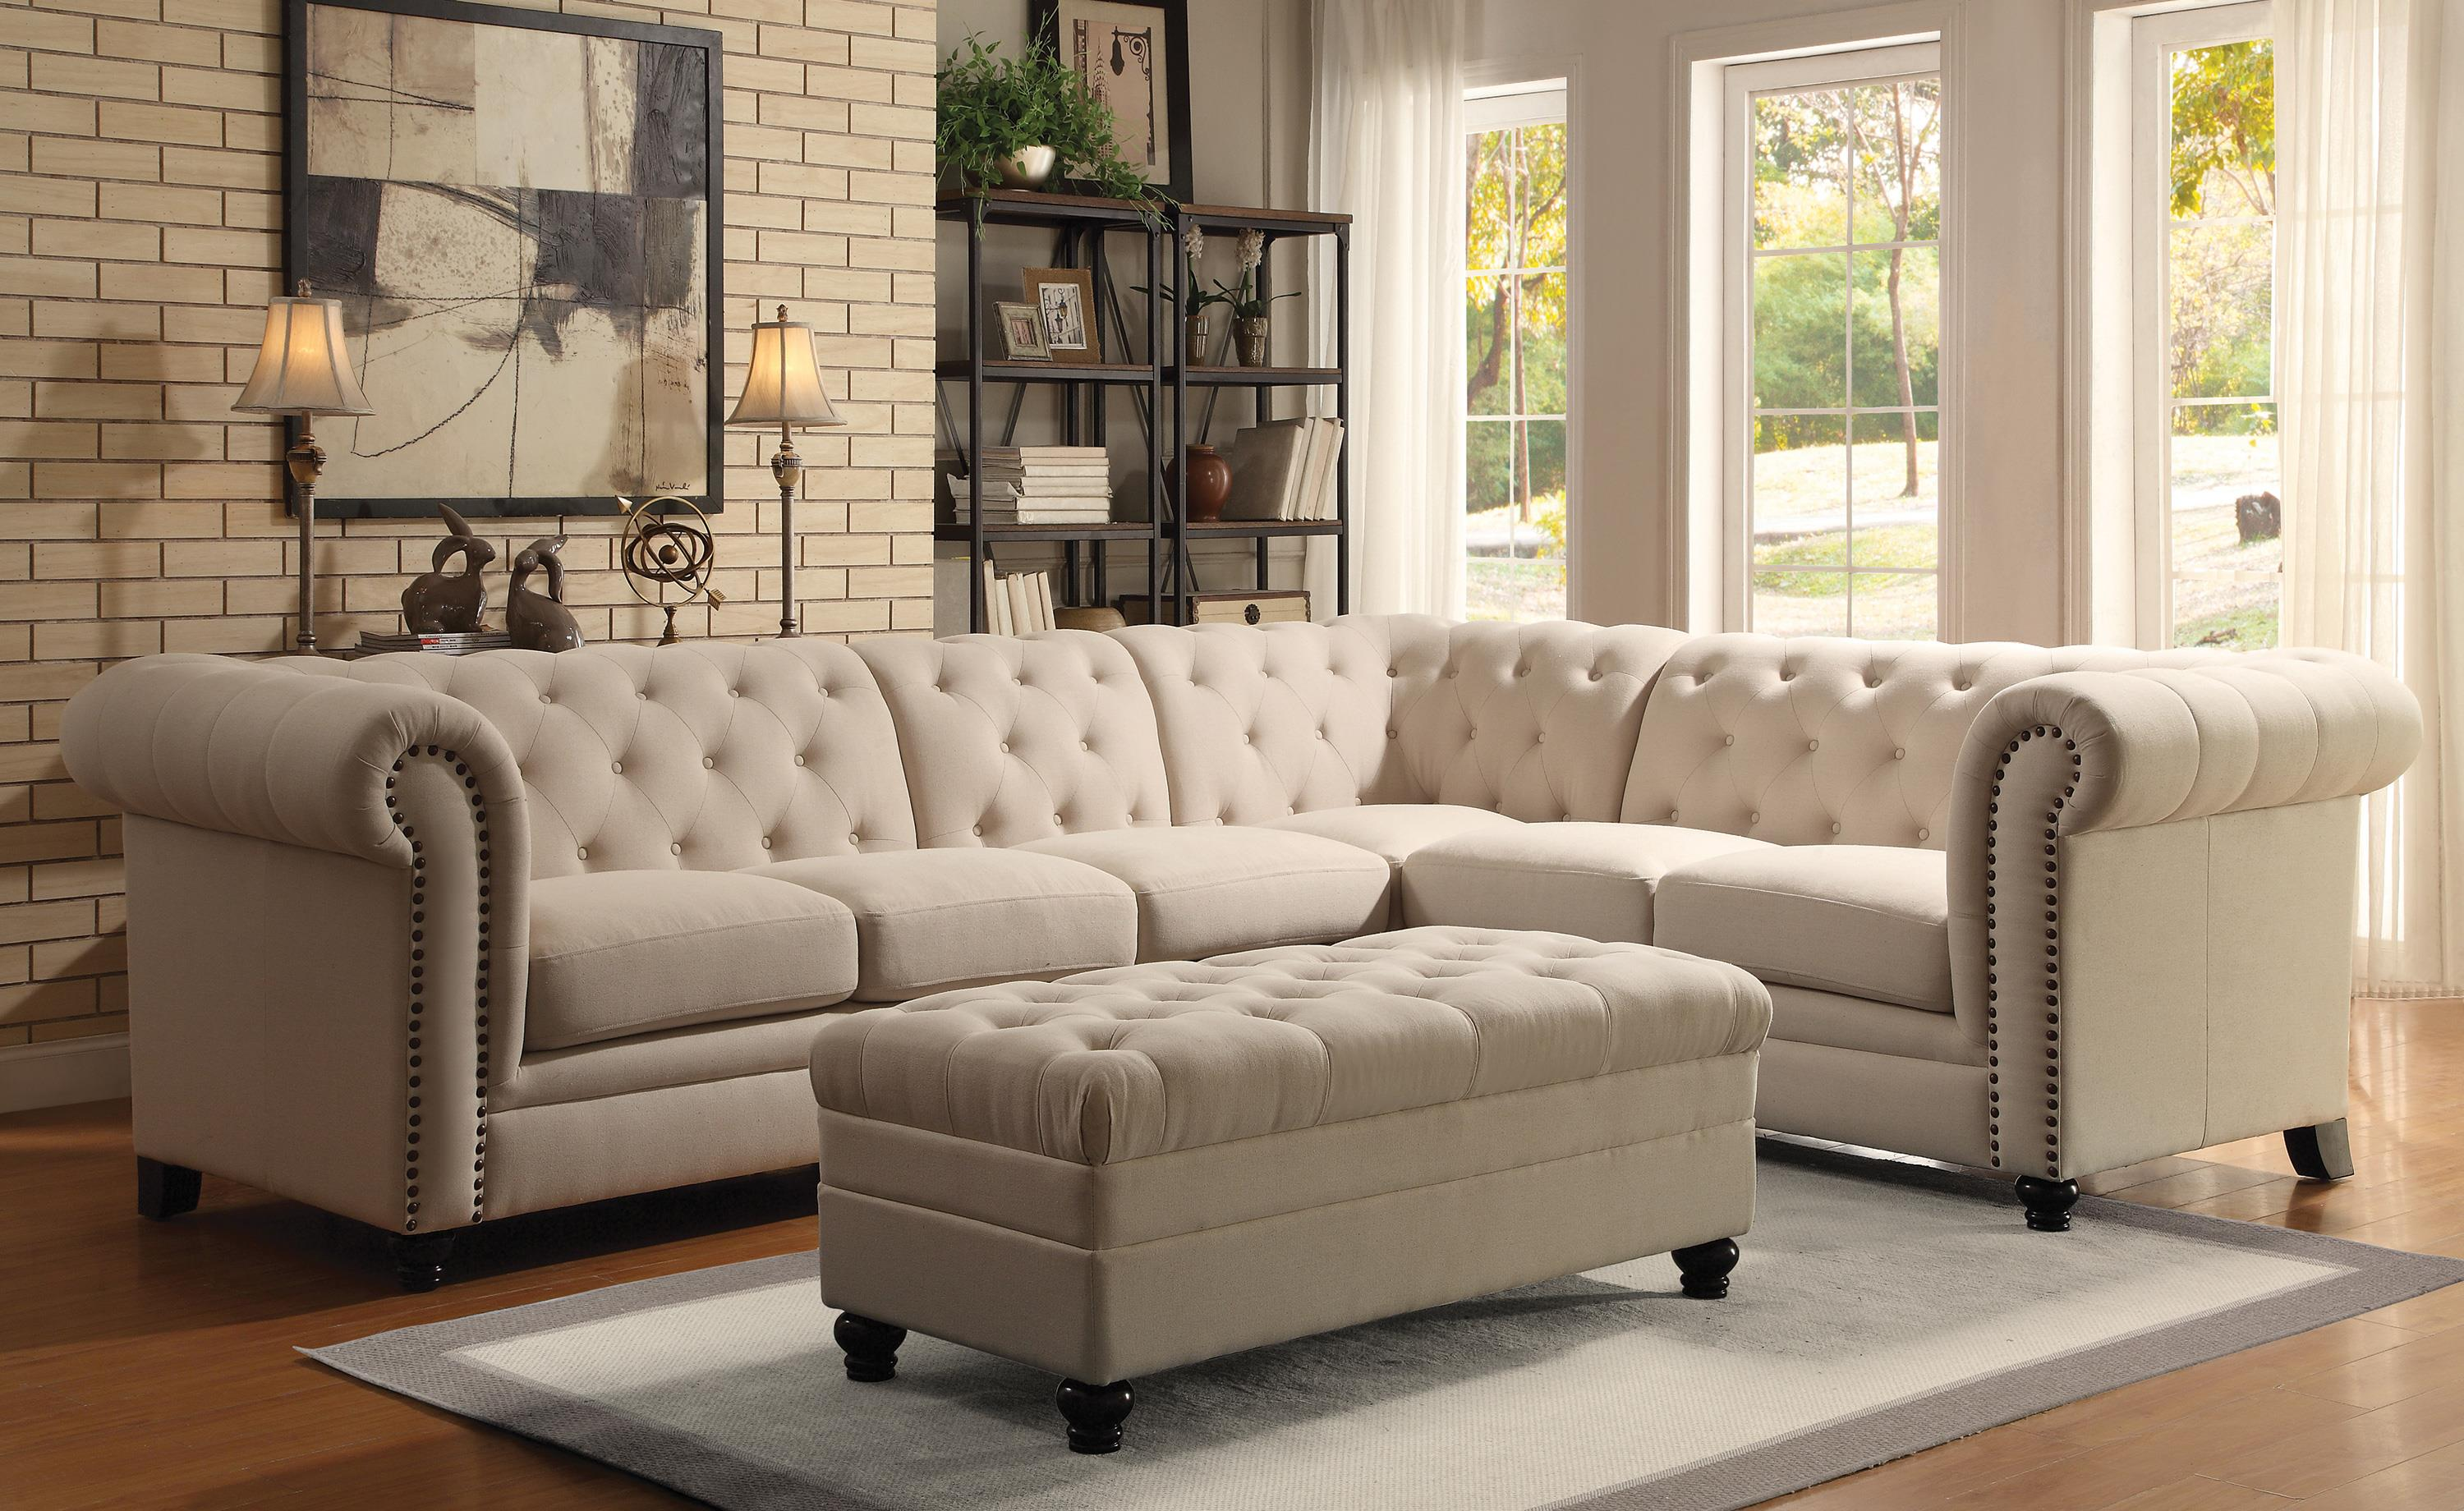 Coaster Roy On Tufted Sectional Sofa With Armless Chair Fine Furniture